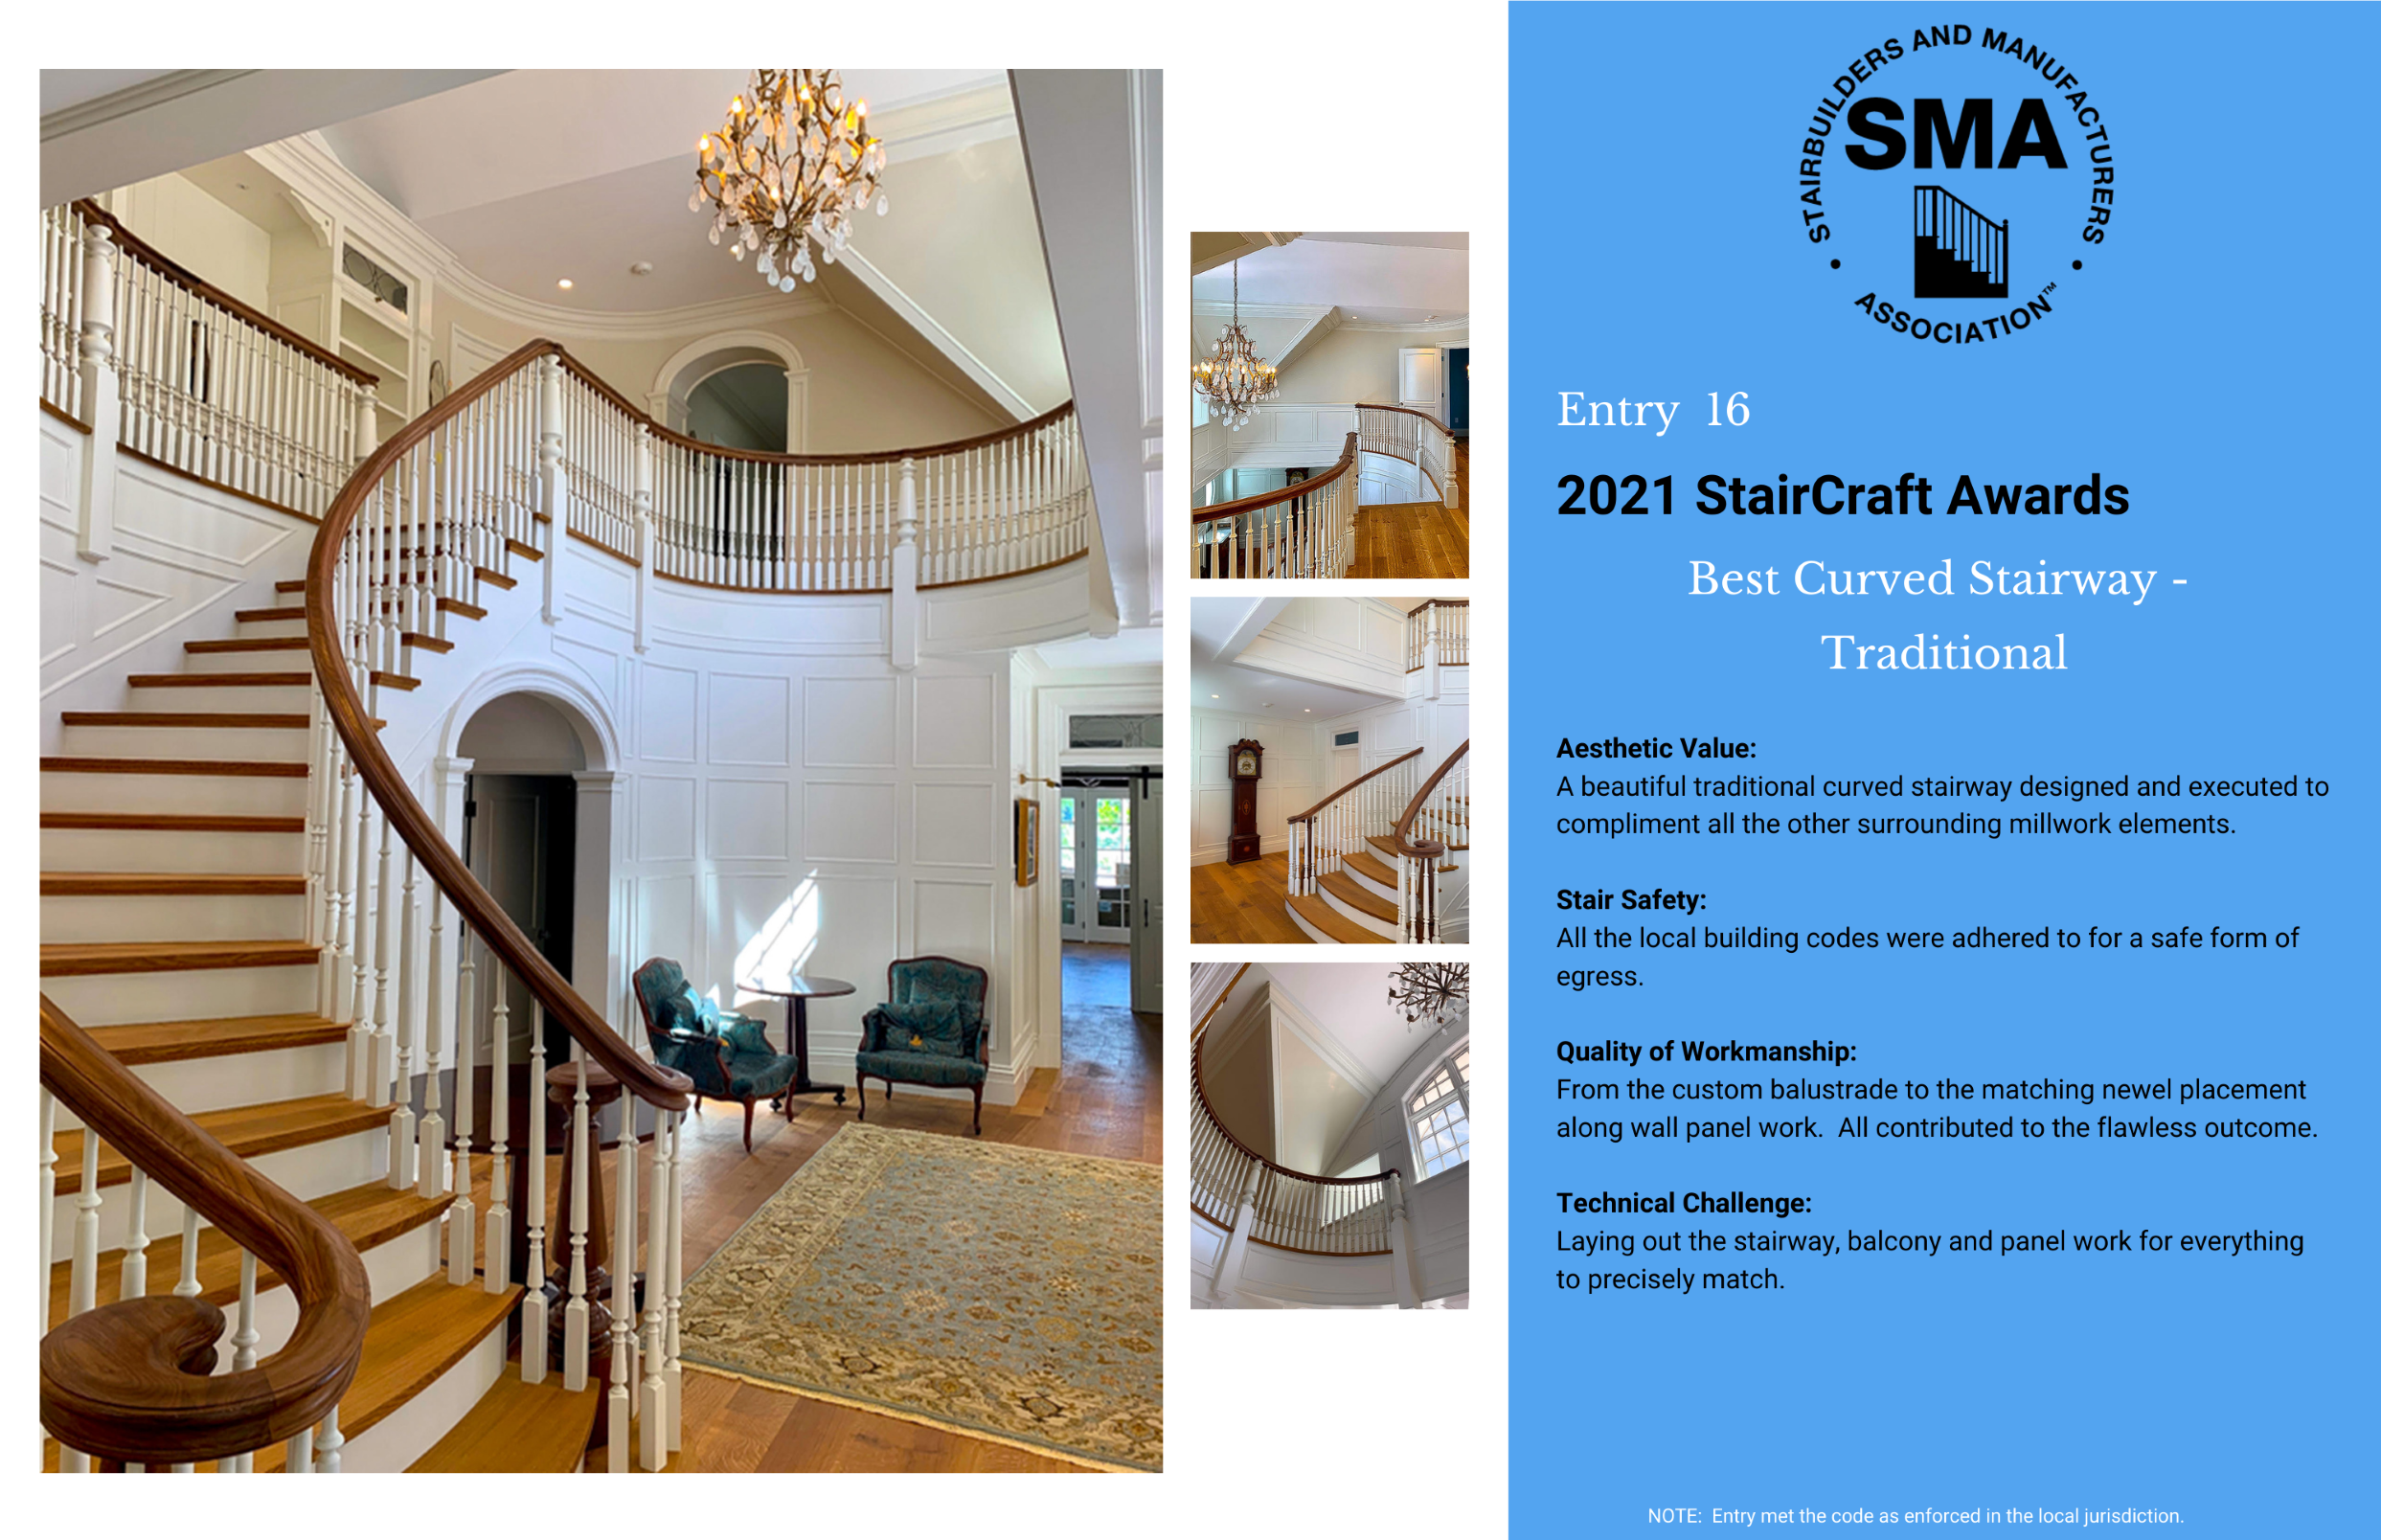 2021 StairCraft Awards Entry 16